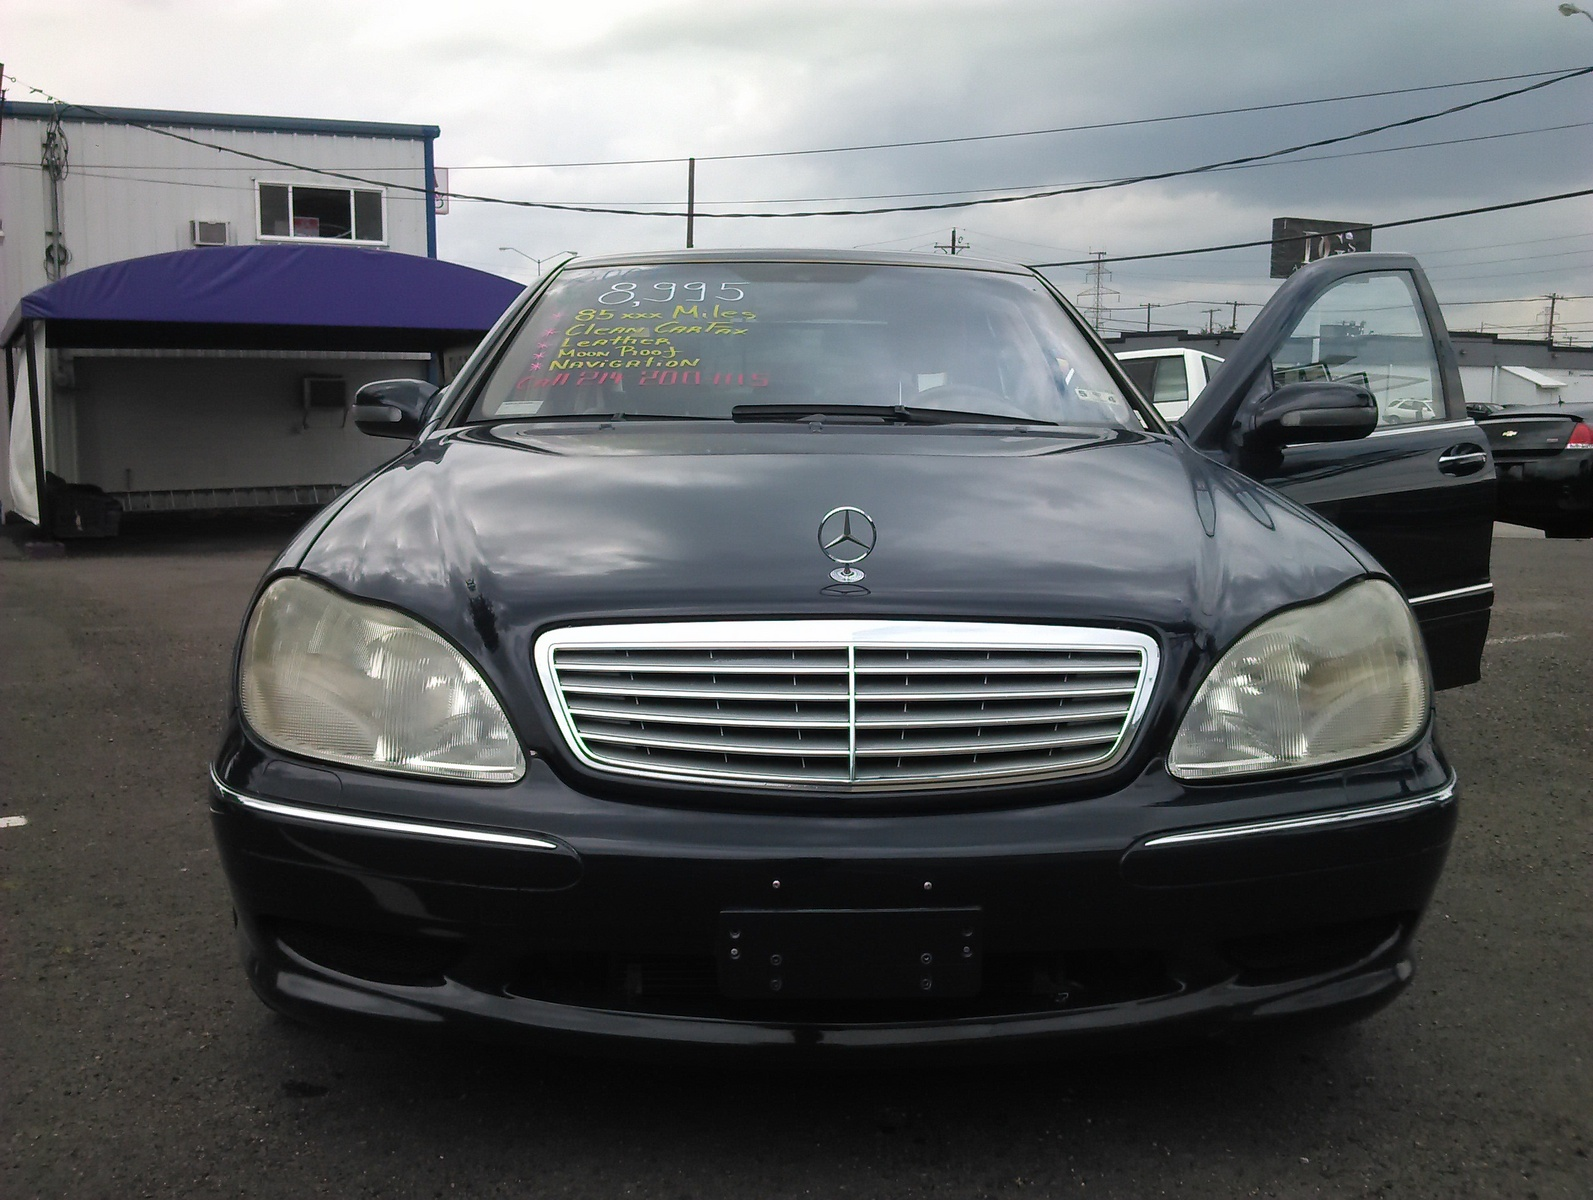 2001 mercedes benz s class pictures cargurus for 2007 s430 mercedes benz